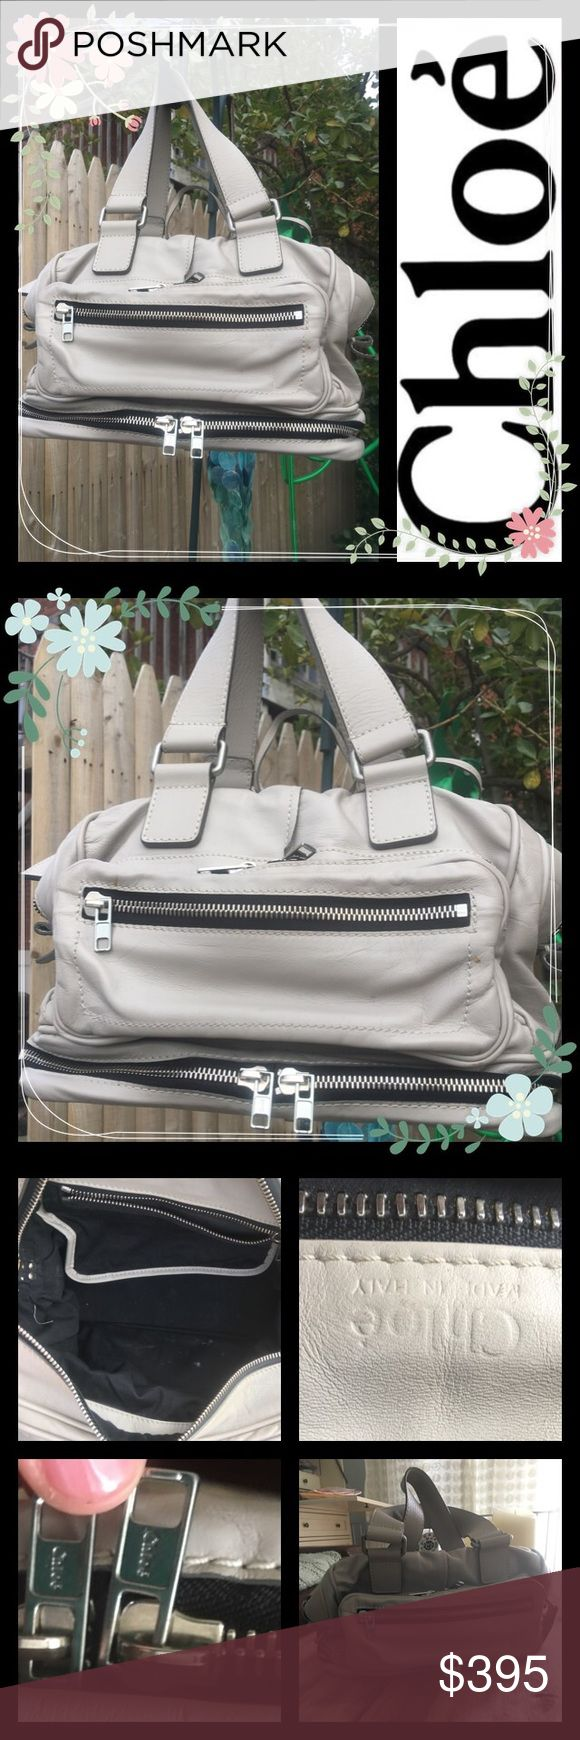 """🌺🌺March madness  🌺🌺 Chloe Betty bag 🔥🔥Reduced March 16th 2017🔥🔥Pale grey Betty bag by Chloe, this is a reposh bag I just haven't used it once. (bought at beginning of poshing! When I had to buy everything😍) Bag is authentic and in good condition except one scuff as photographed in pic 7, and few white marks inside. Price is reflective of condition and is sold """"as is""""Satchel  bag no dustbag or tags. Reduced from $375 Chloe Bags Satchels"""